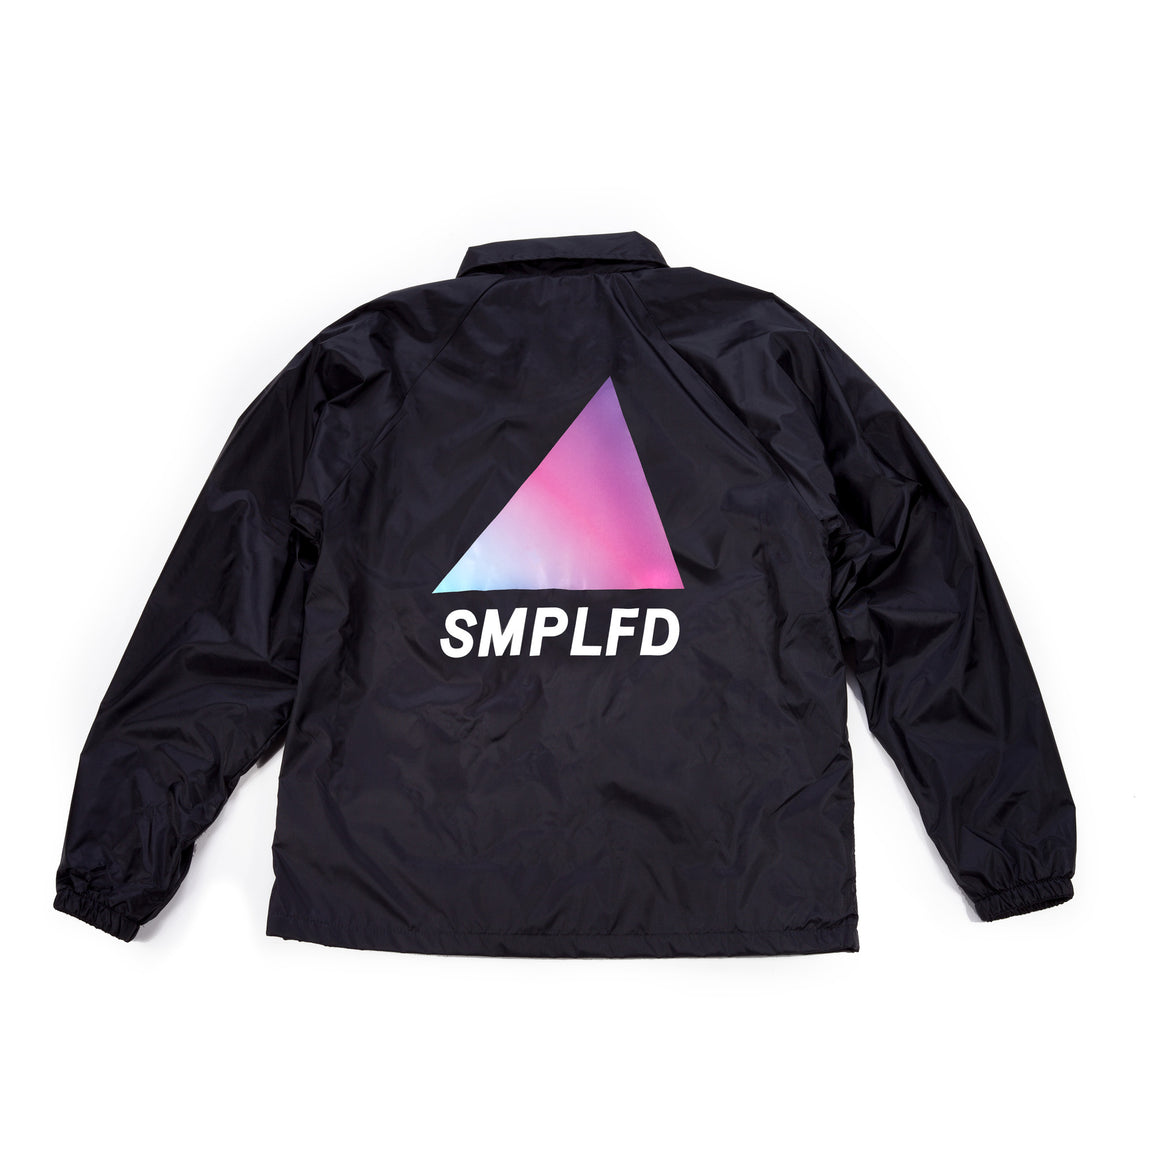 SMPLFD Gradient Coach's Jacket | Black